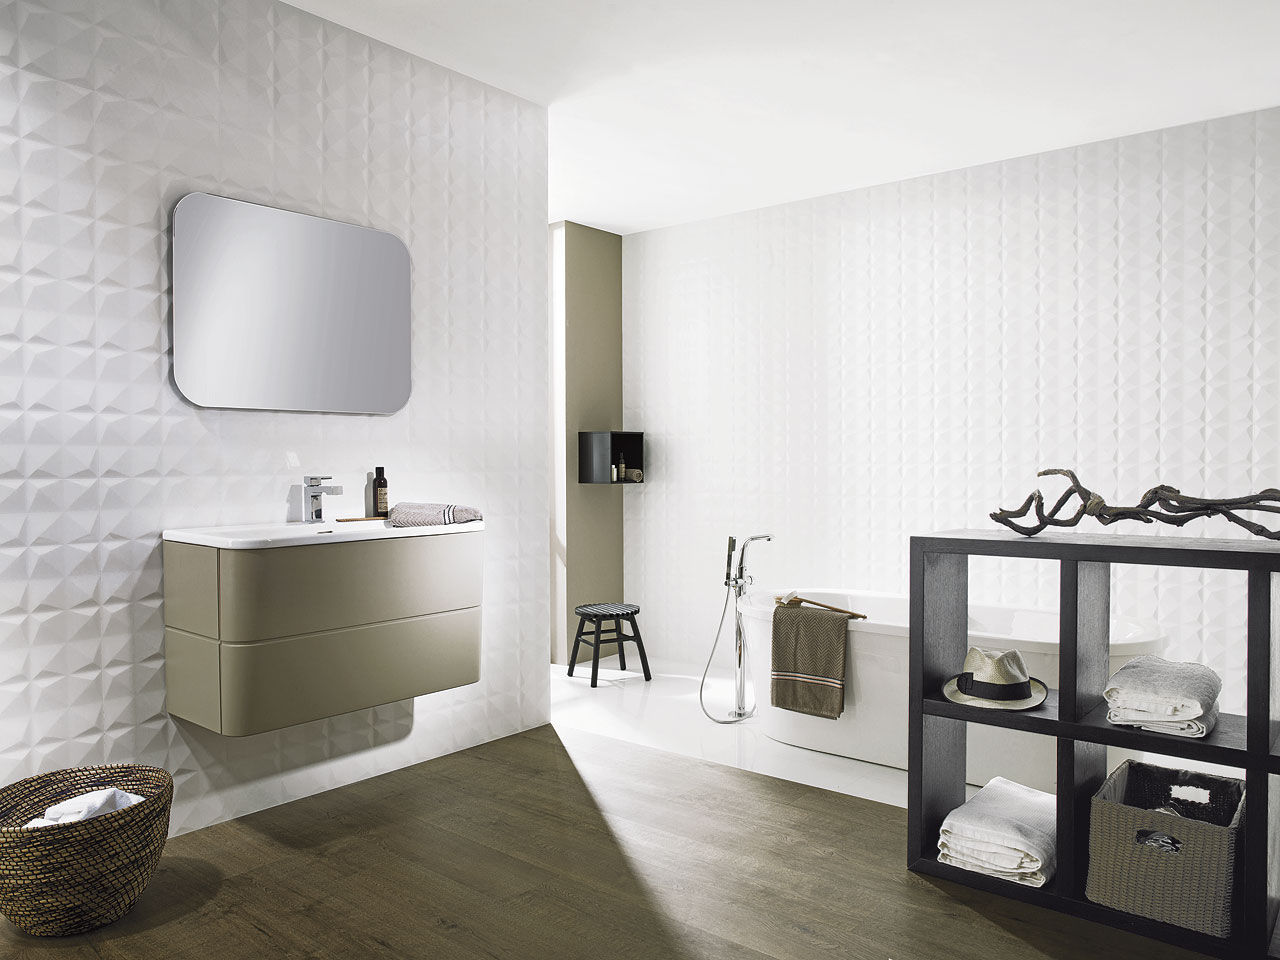 indoor-tile-bathrooms-wall-ceramic-12-6406045